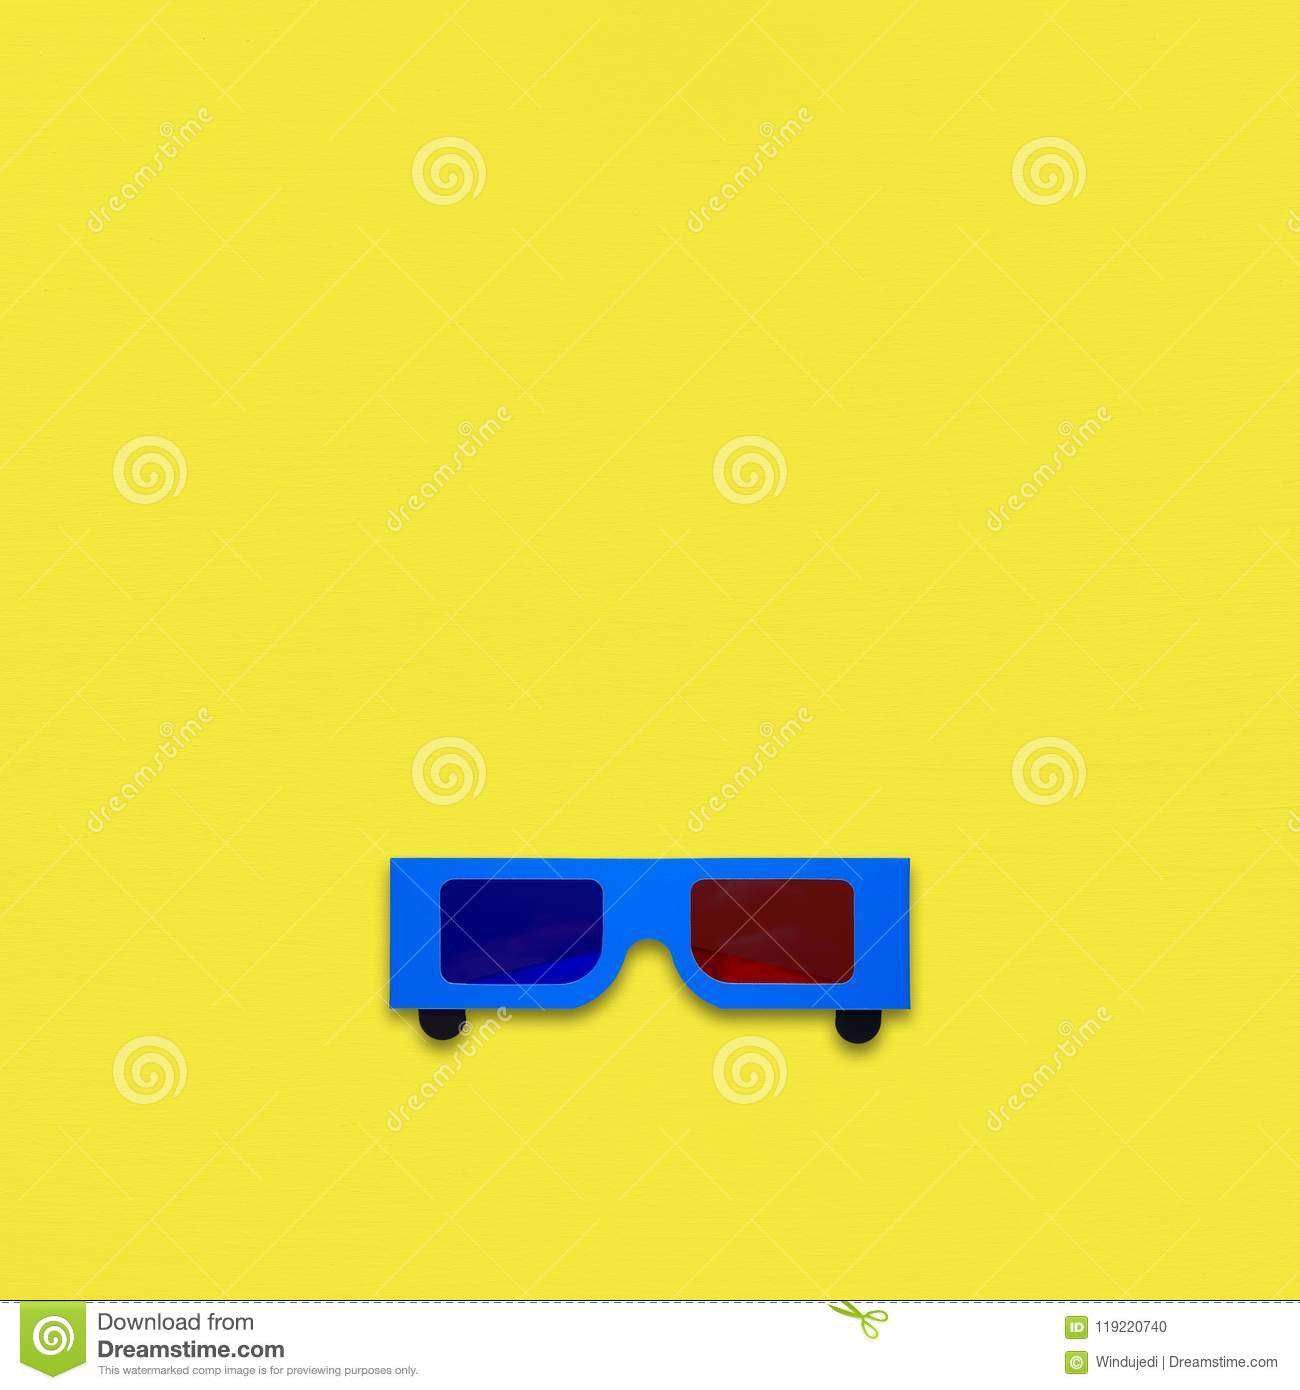 Anaglyph glasses on yellow background